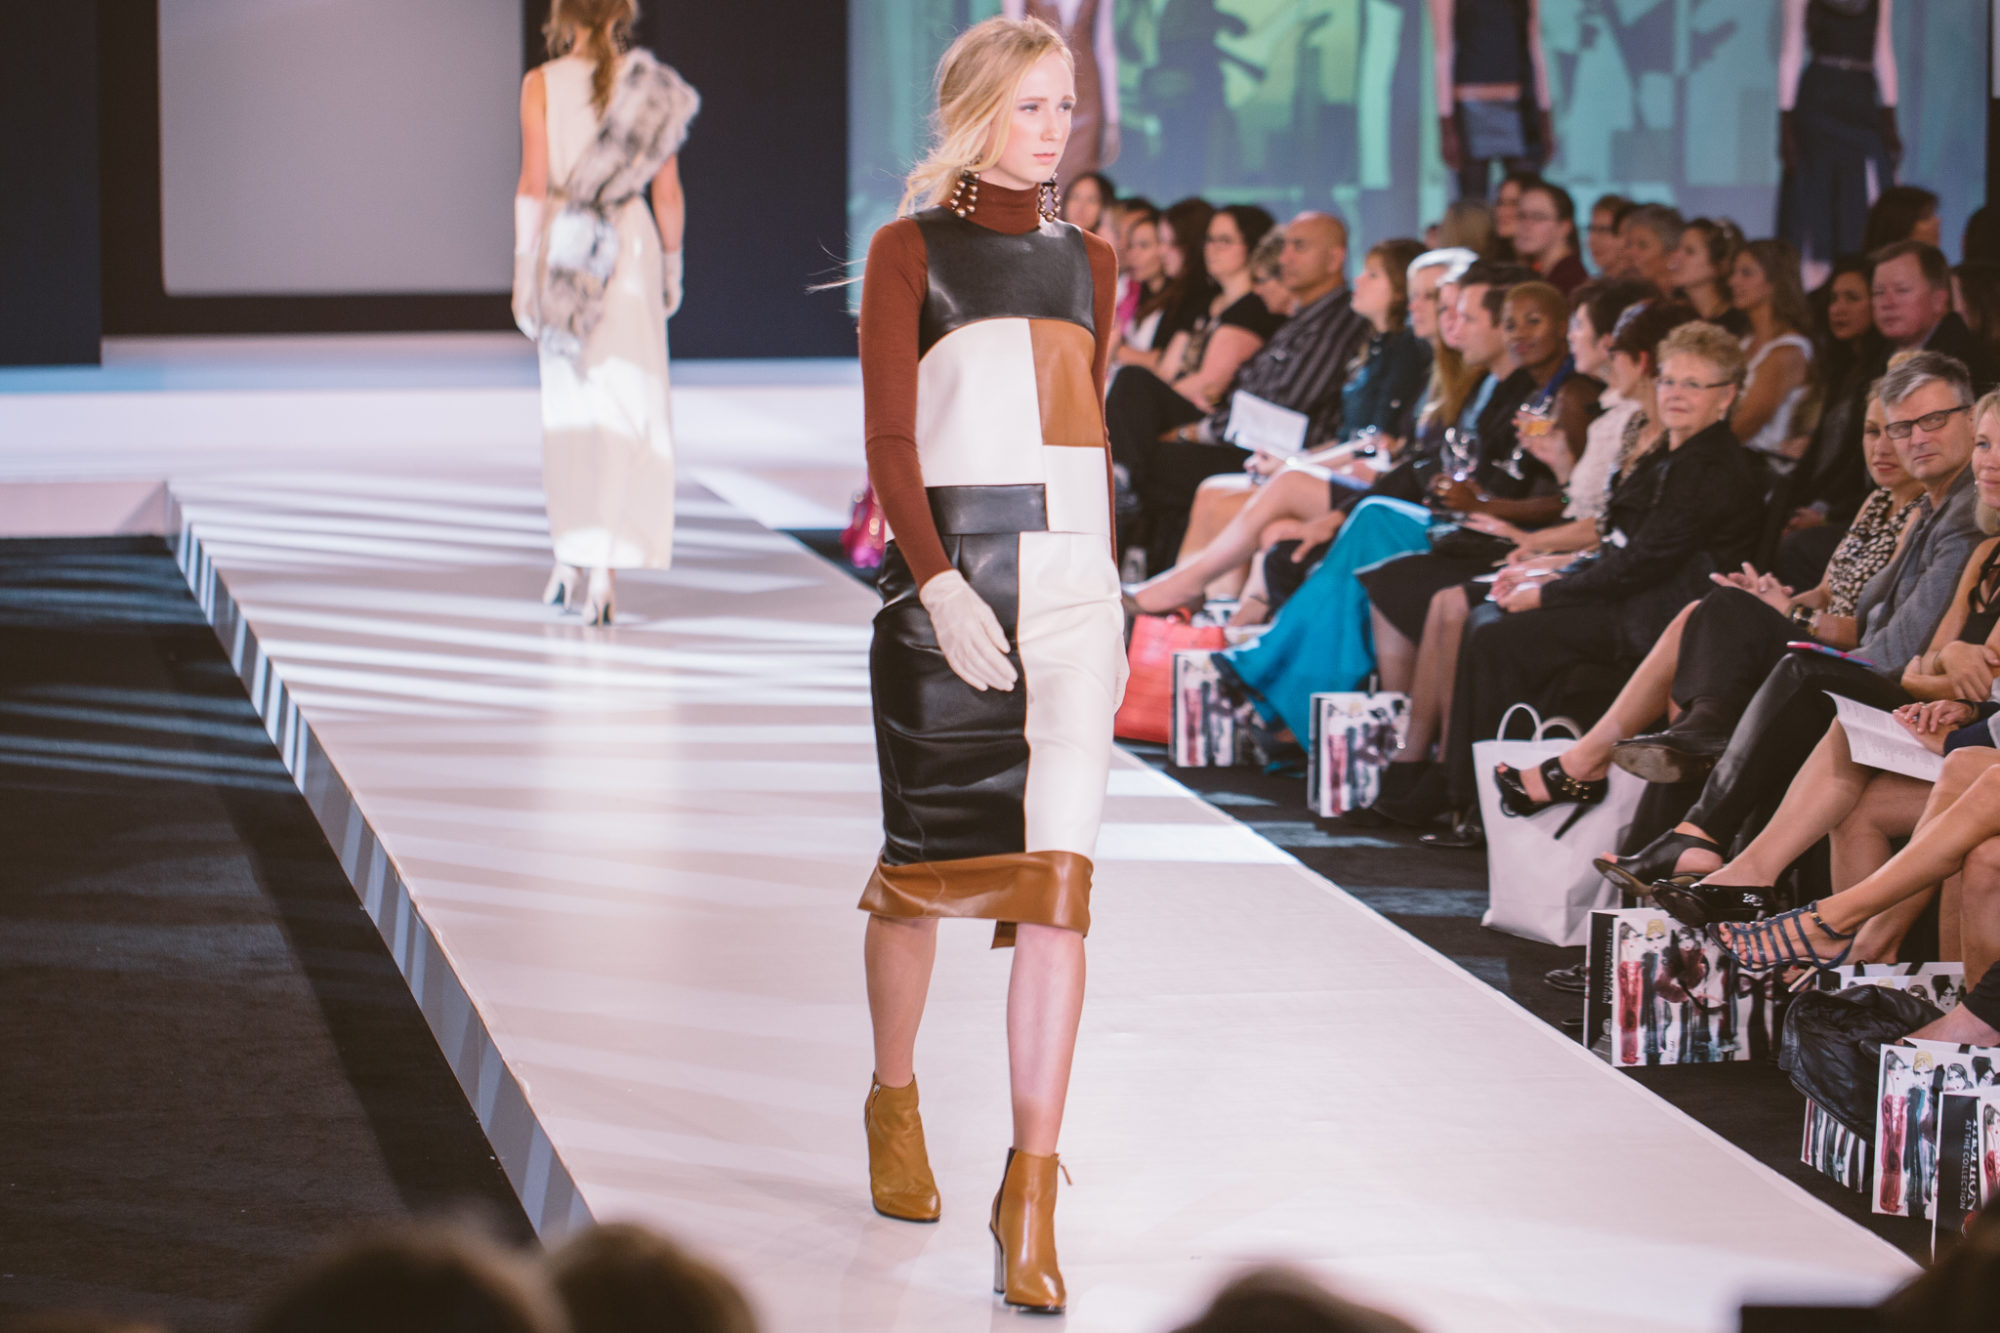 Varsha Color Blocked Top + Skirt at Independent Designer Runway Show 2015. Photo by Jed Sarmiento.